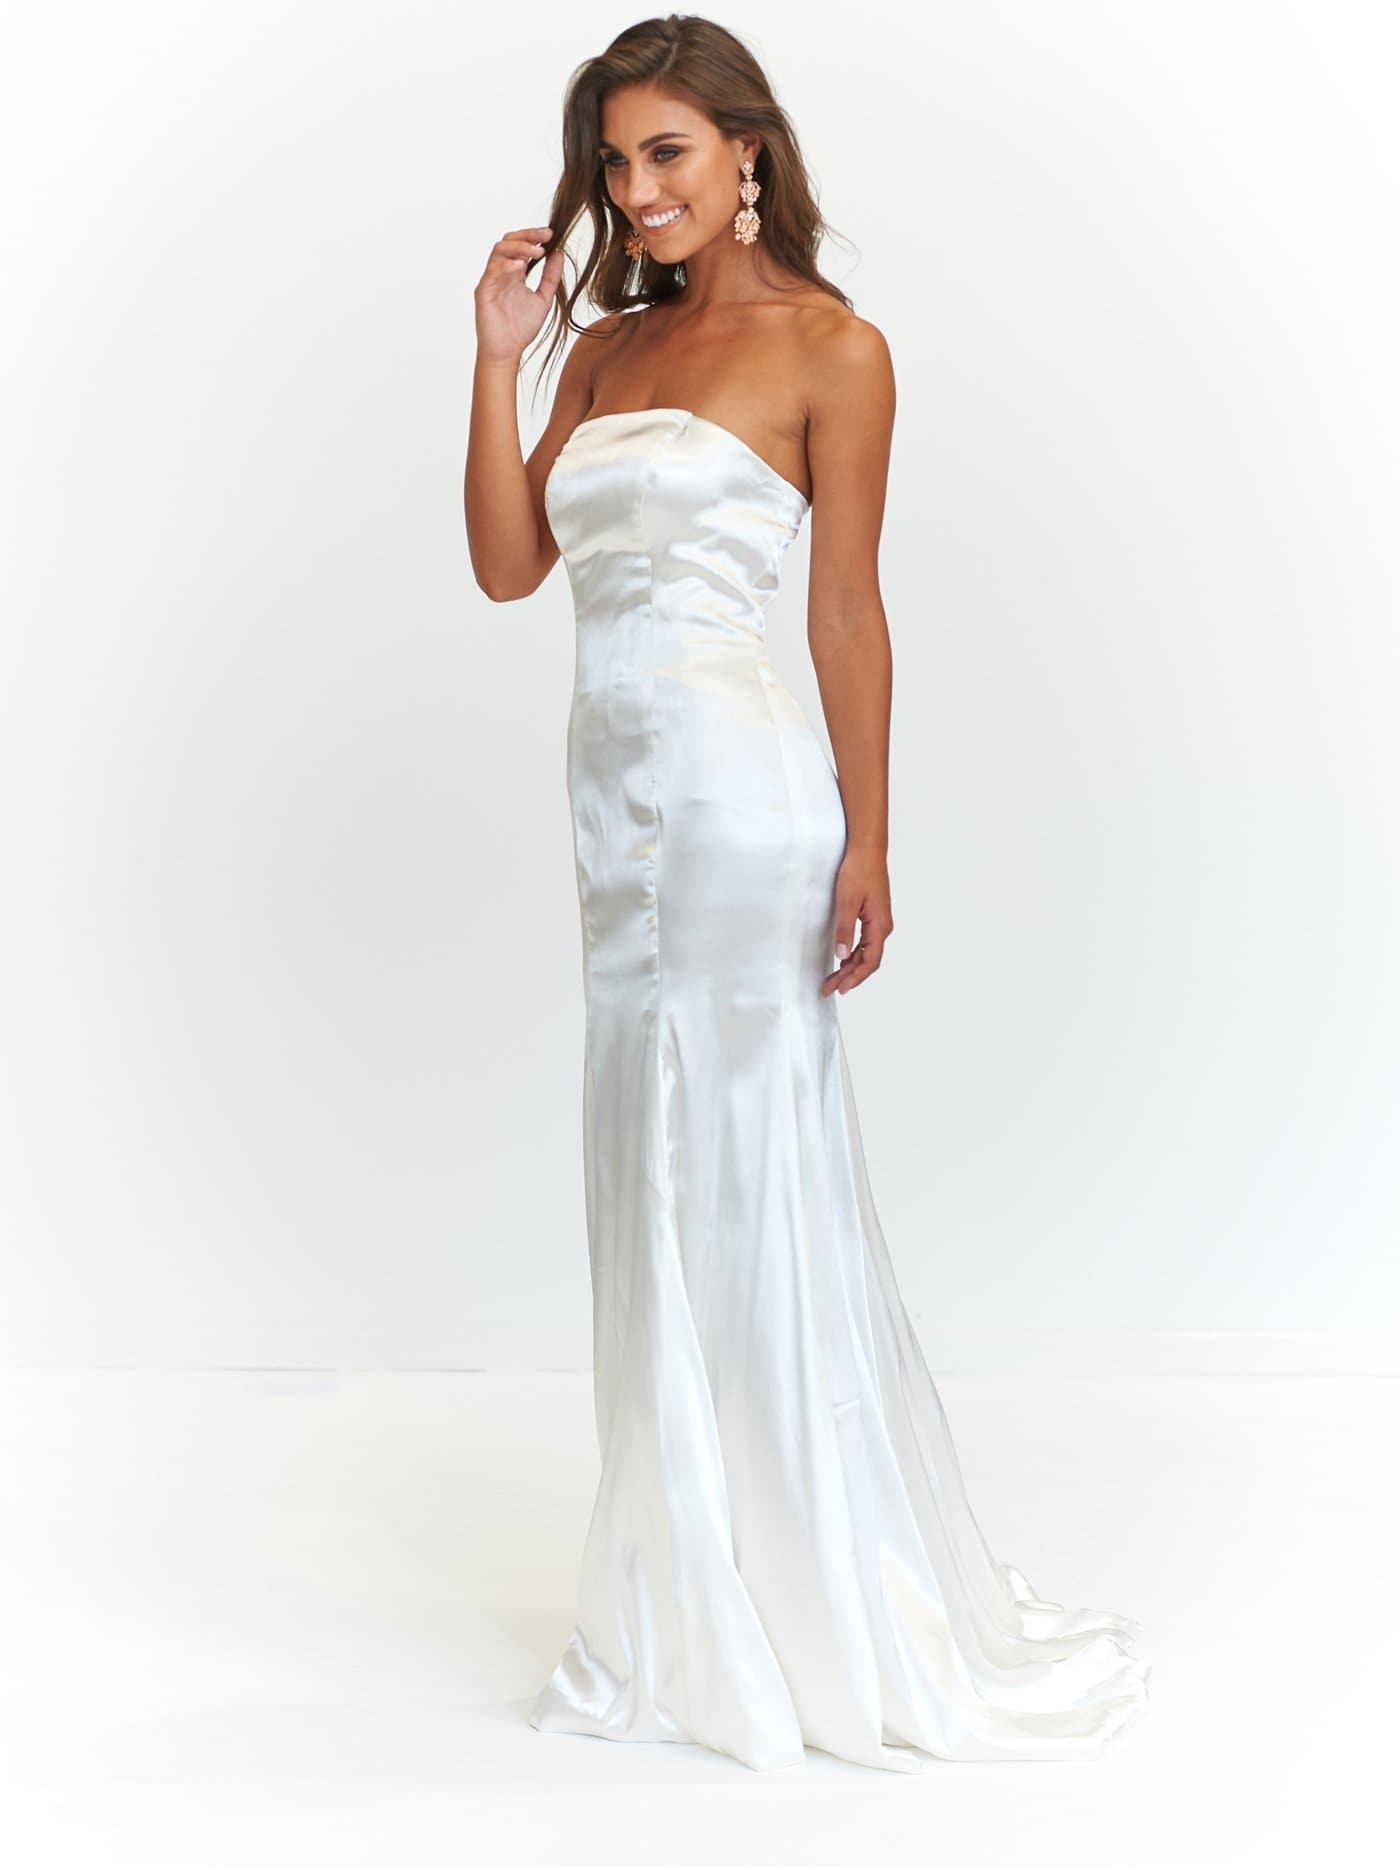 A&N Aino - White Satin Strapless Gown with Mermaid Train